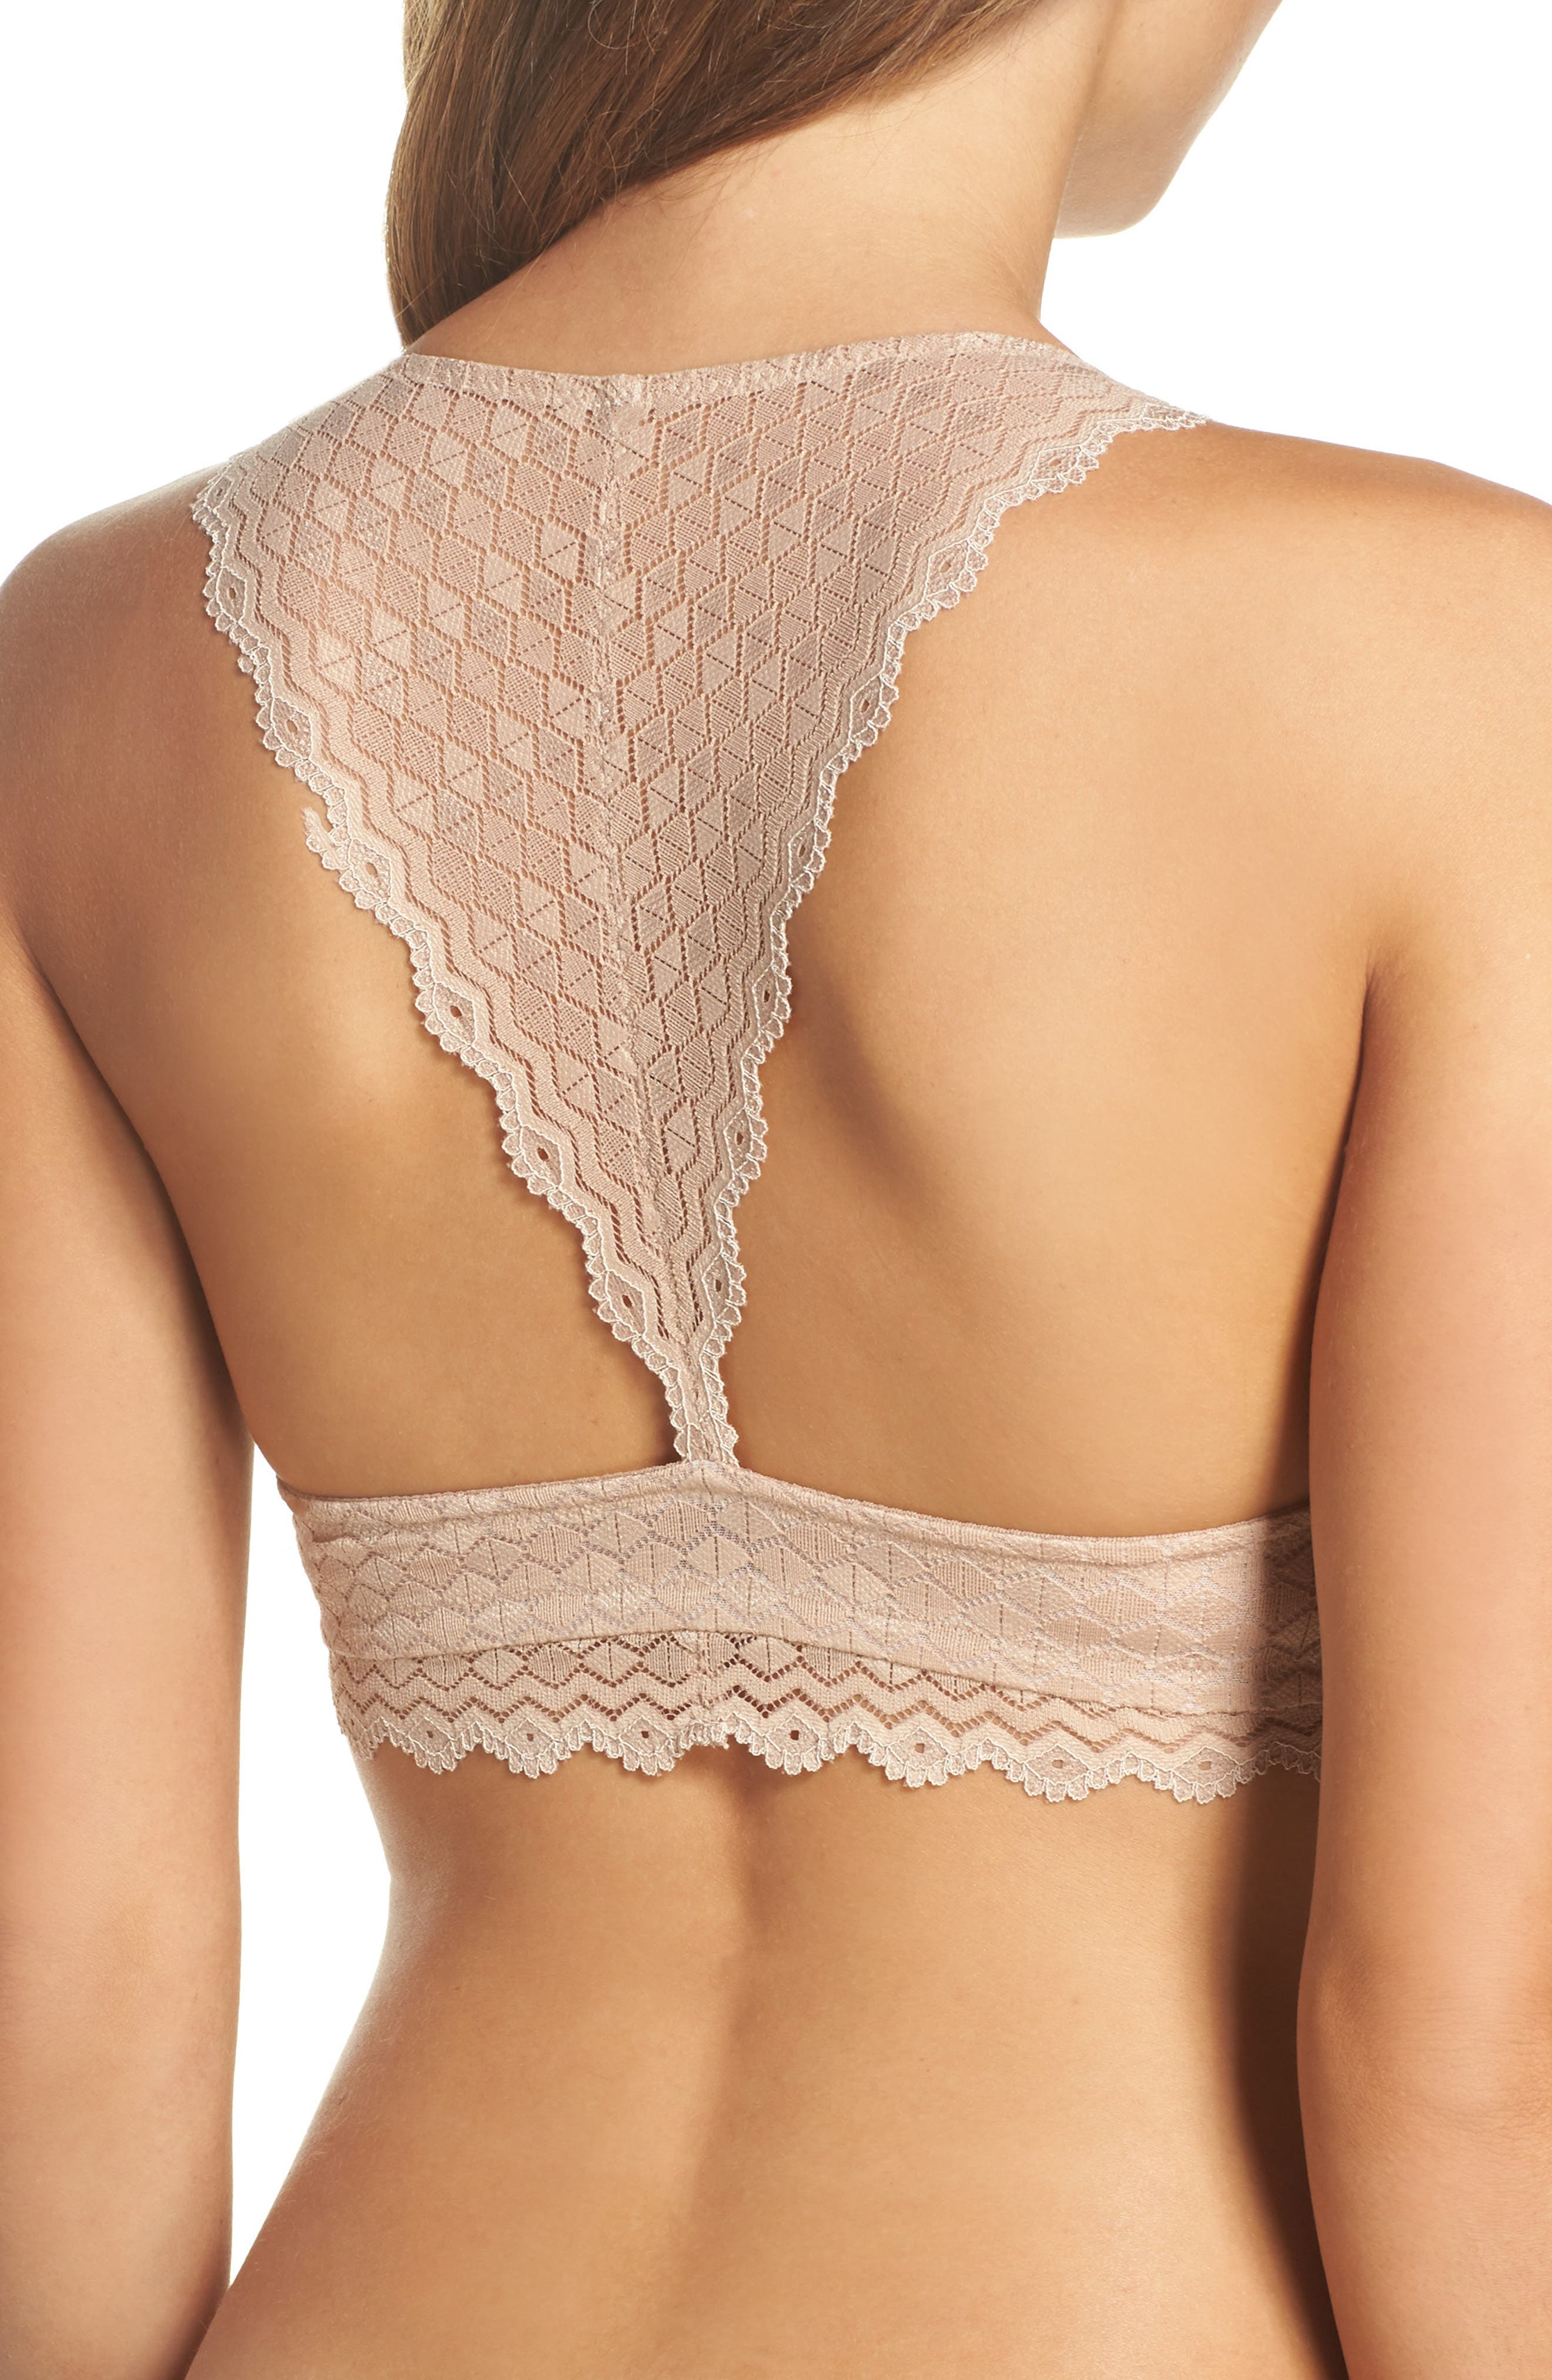 b.tempted by Wacoal Plunge Lace Bralette,                             Alternate thumbnail 6, color,